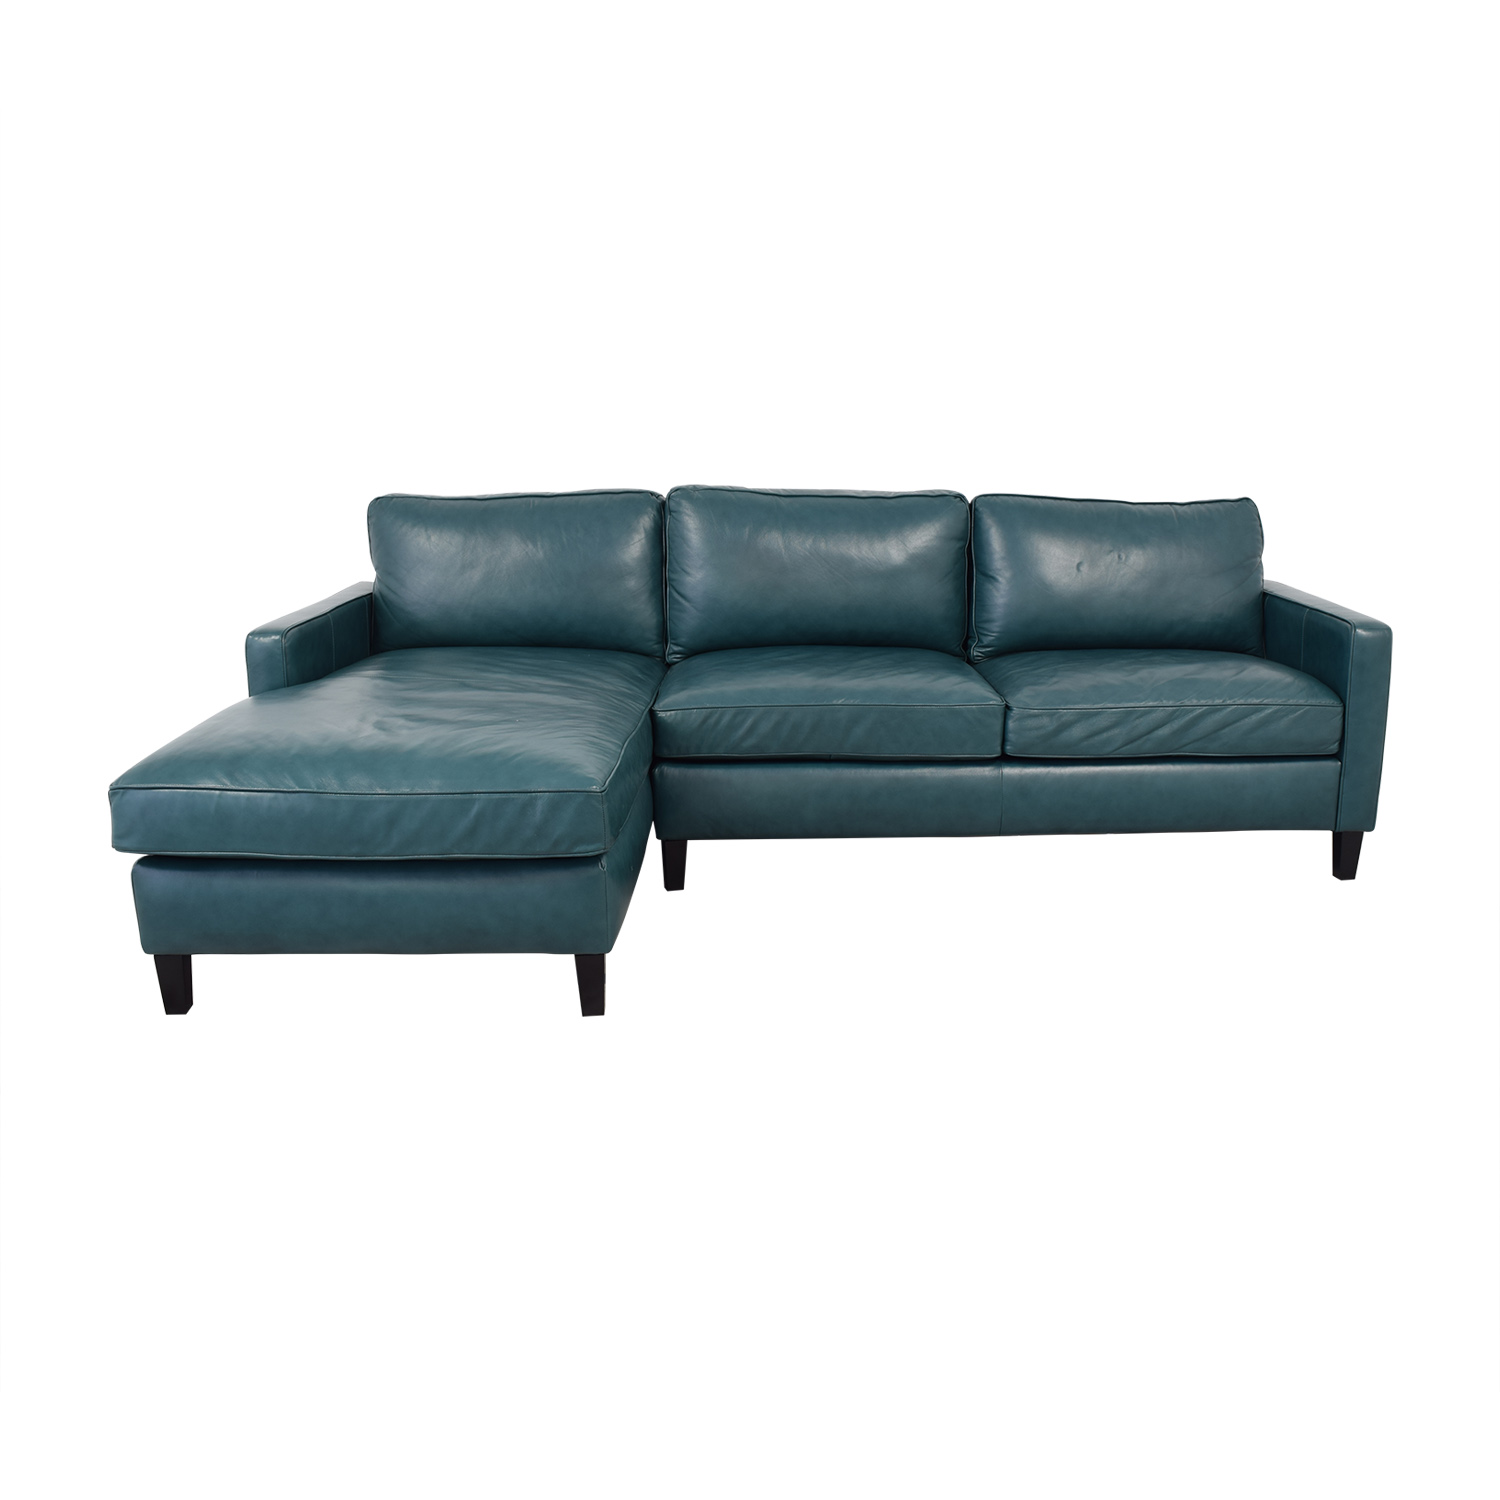 shop Brayden Studio Brayden Studio Chaise Sectional Sofa online